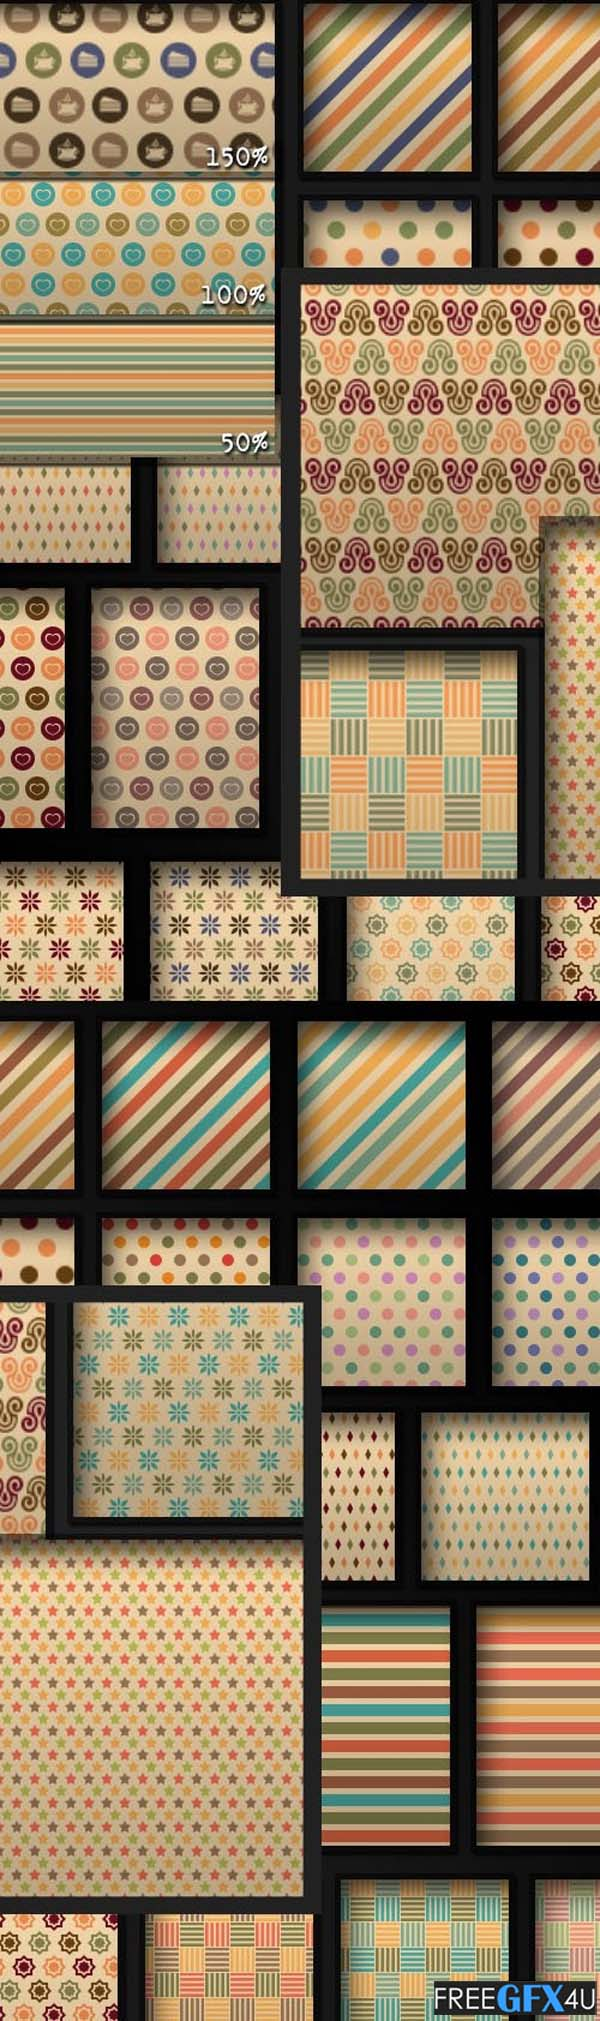 110 Photoshop Pattern Styles In Vintage Color Schemes